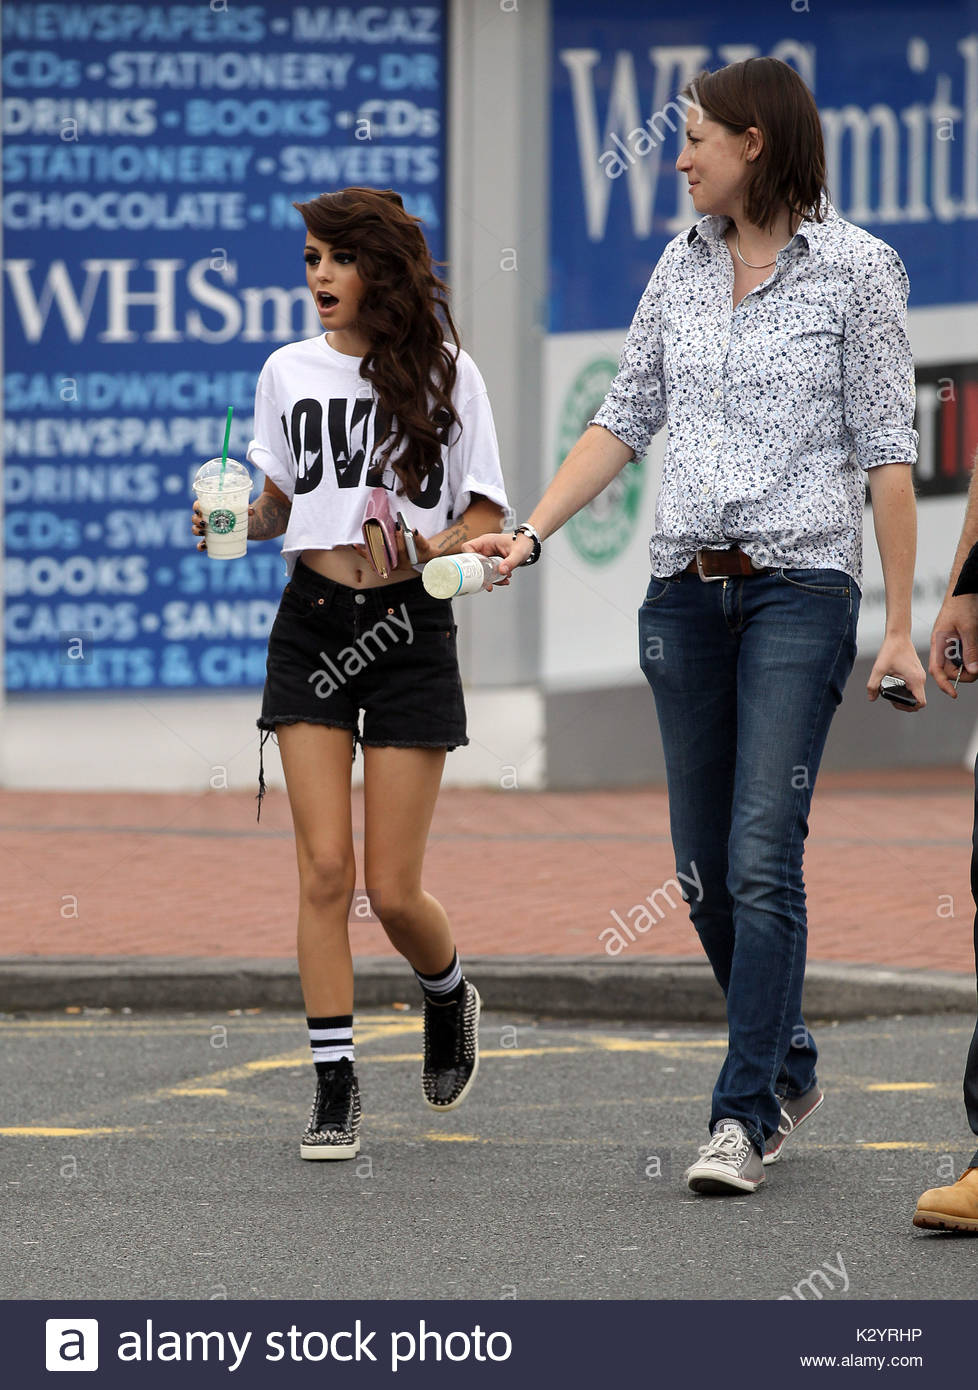 cher lloyd cher lloyd spotted at a motorway service station with a stock photo 156733858 alamy. Black Bedroom Furniture Sets. Home Design Ideas